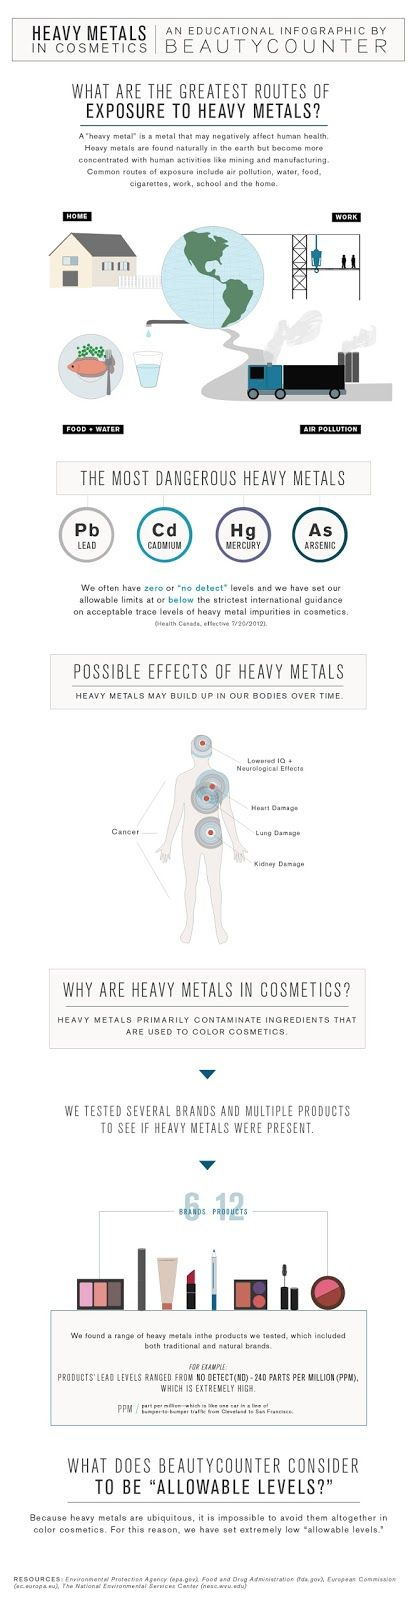 Infographic on Heavy Metals in Cosmetics.